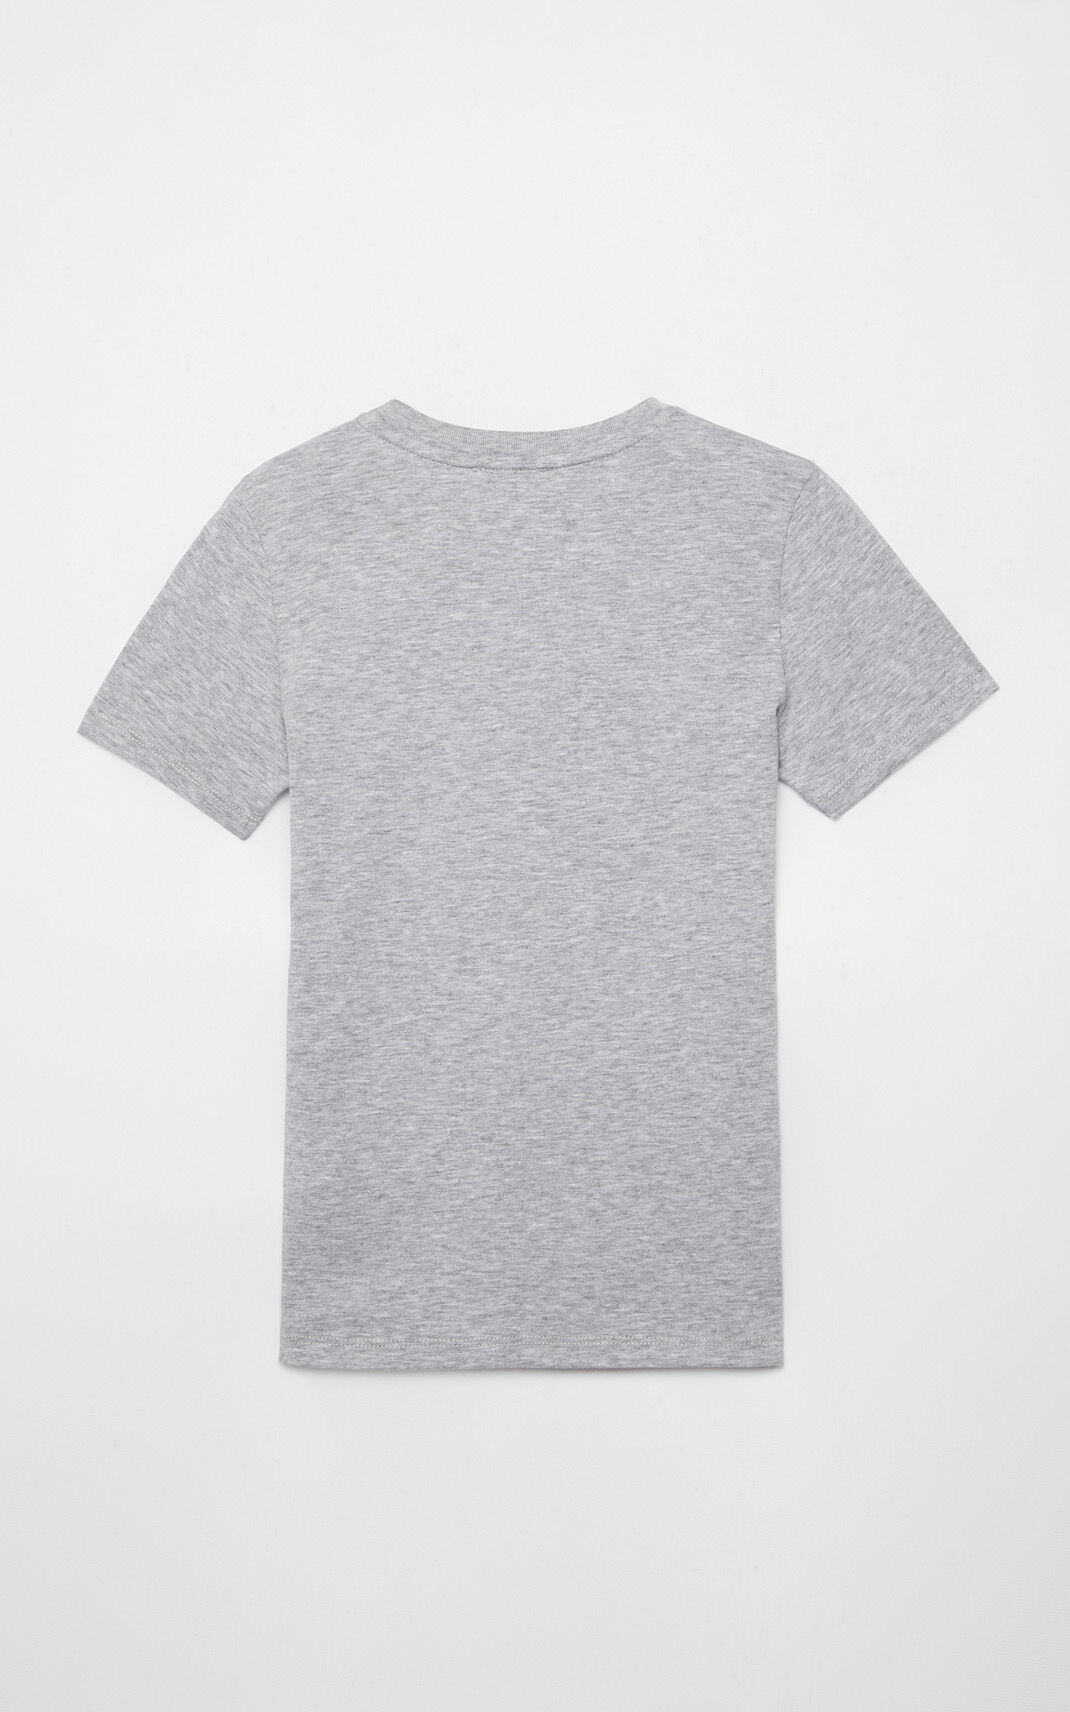 MIDDLE GREY Multi-logo t-shirt for men KENZO